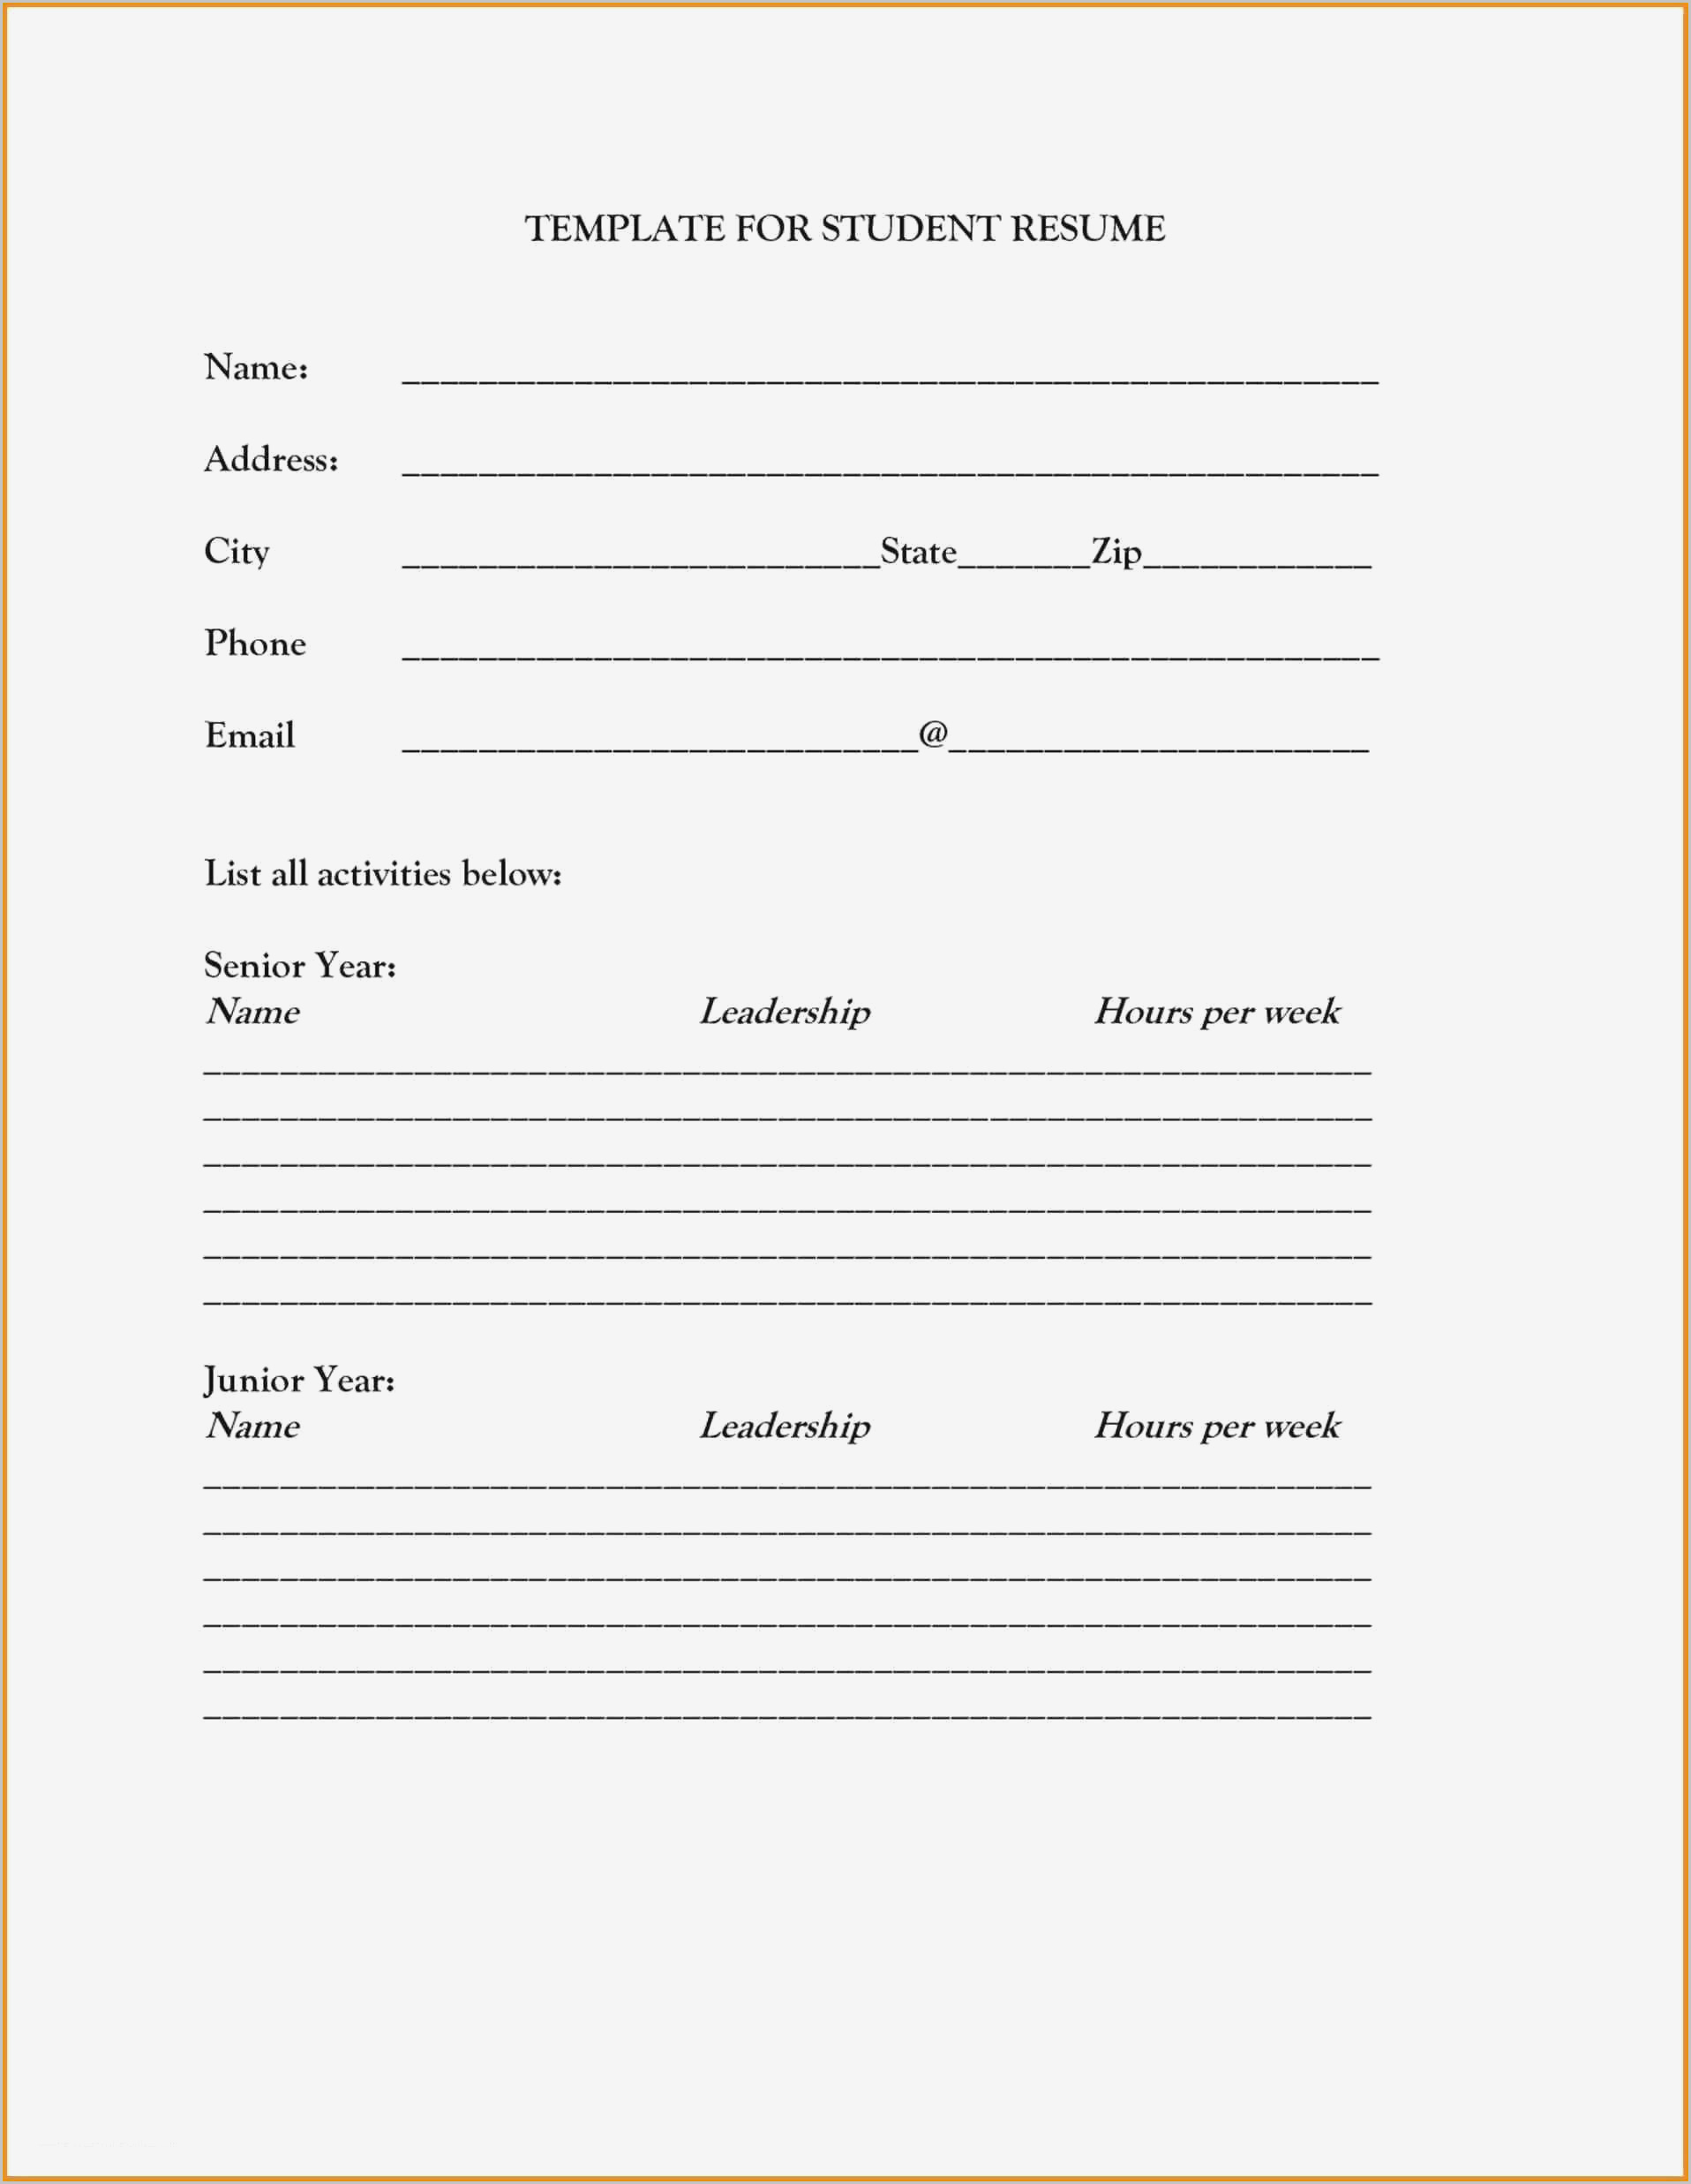 Printable Fill In The Blank Resume Form - Resume pertaining to Printable Social Skills Fill In The Blanks